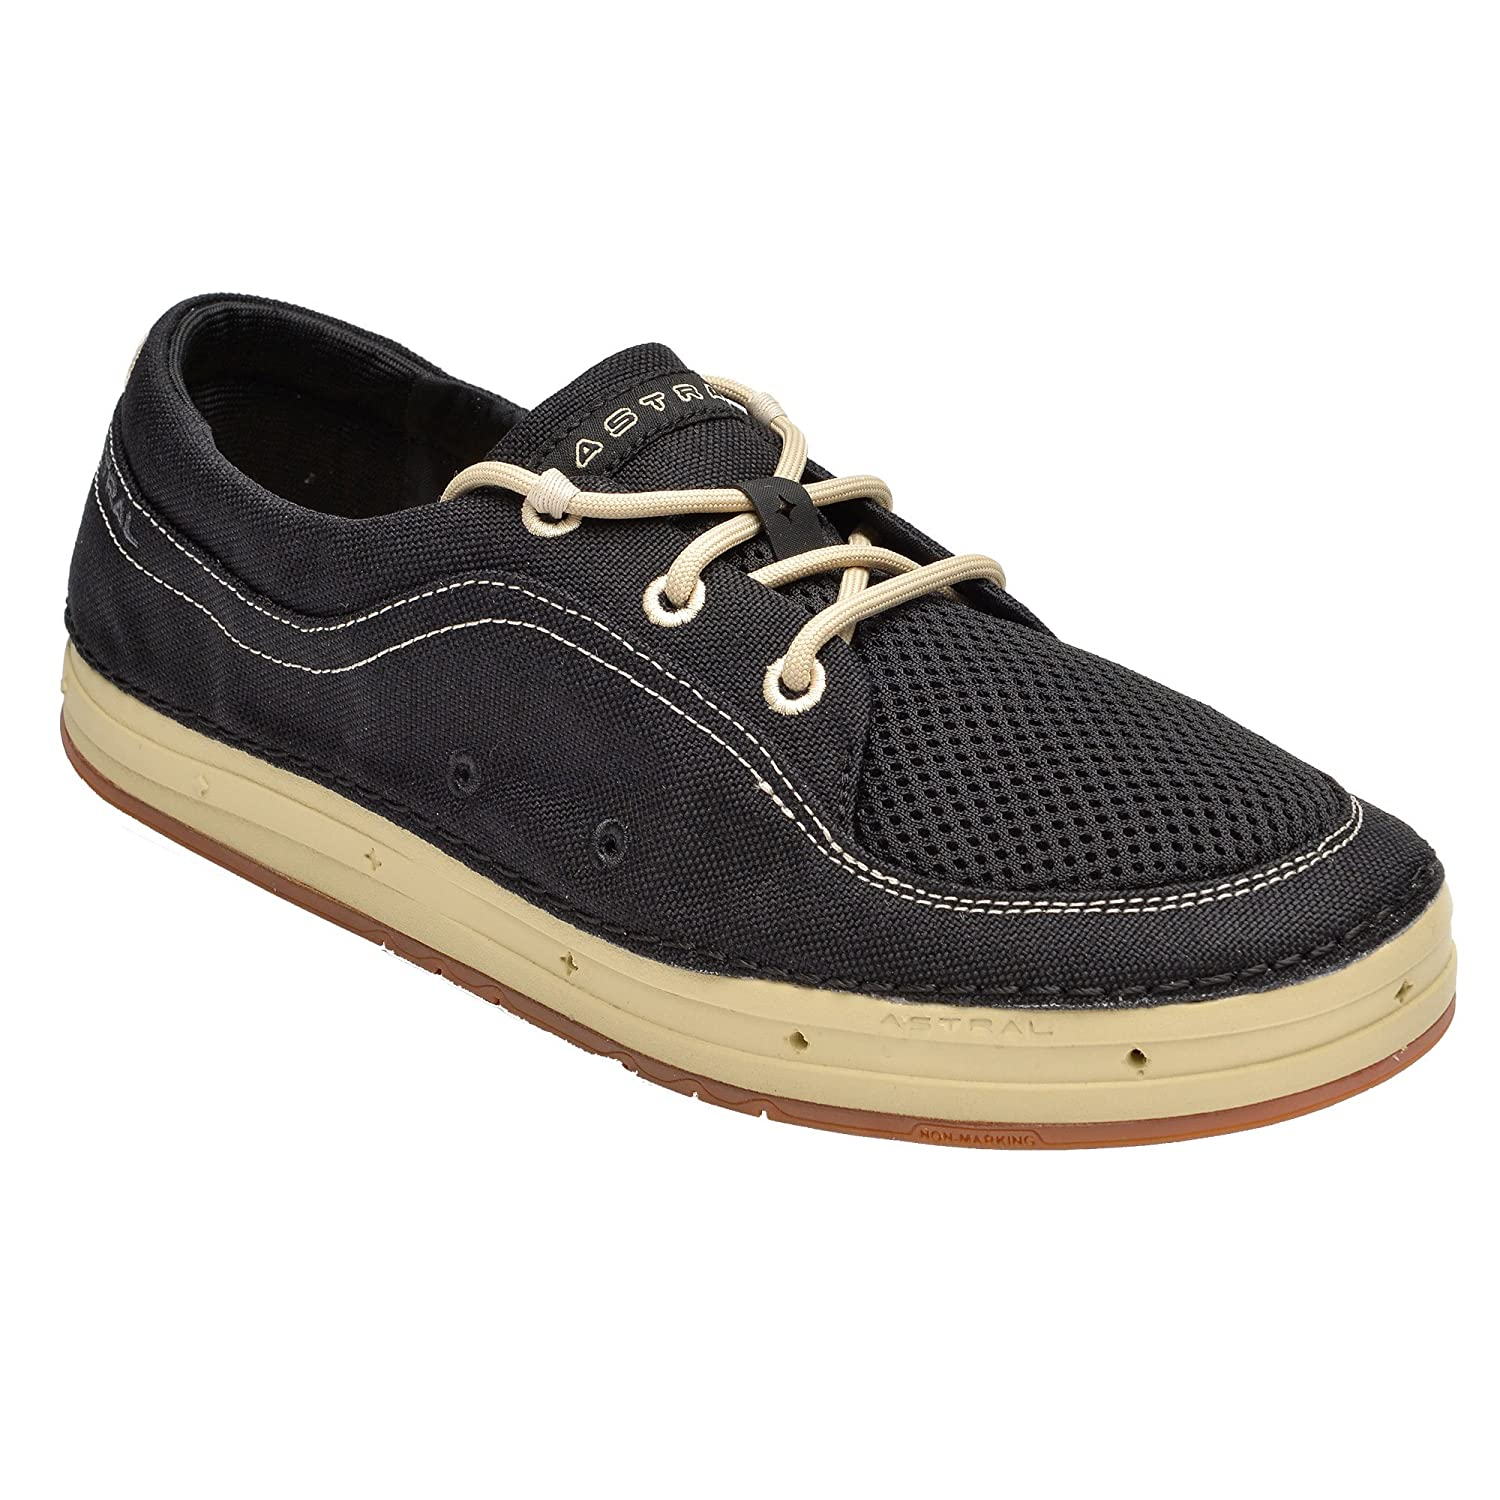 Mens Porter Outdoor Shoe for Boat Water Astral and Travel Casual